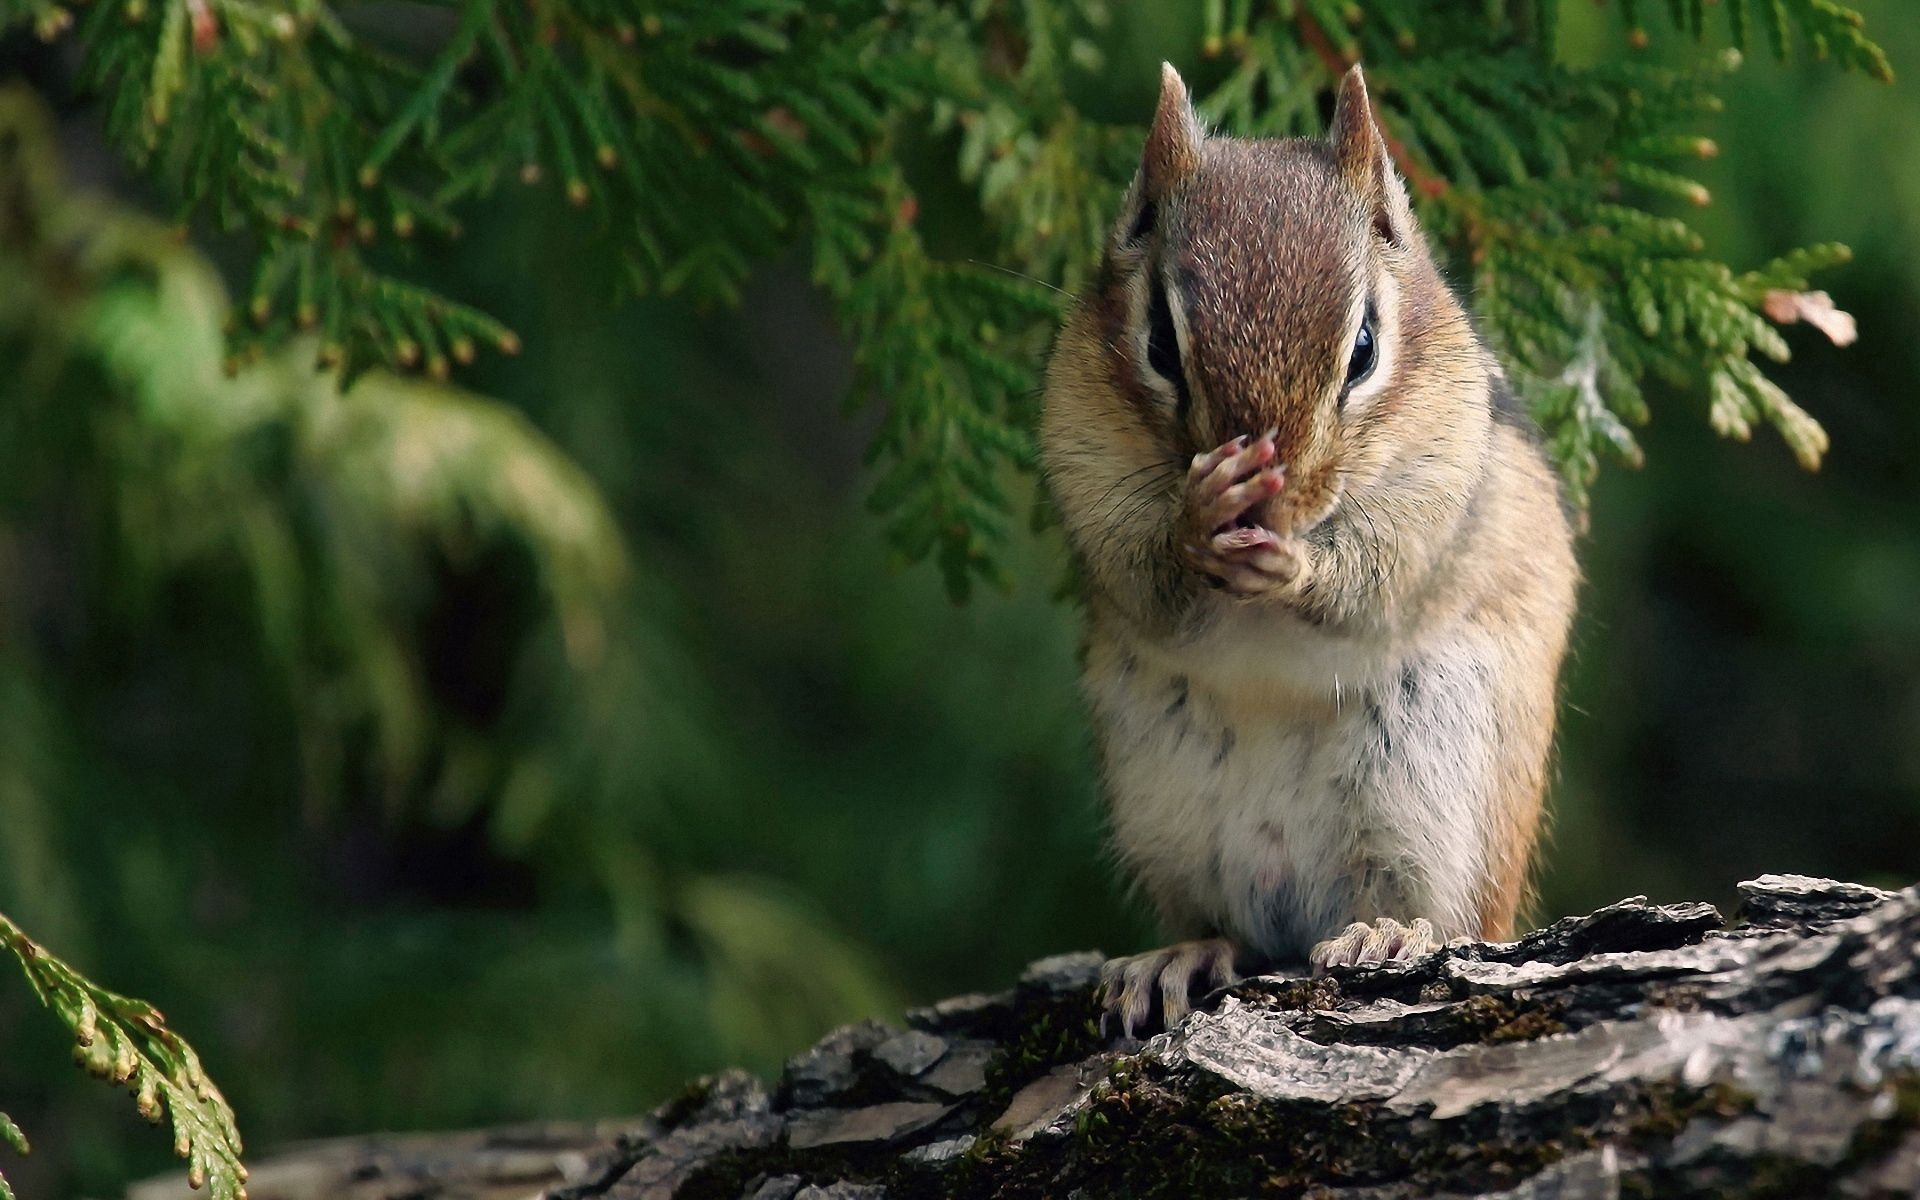 126651 download wallpaper Animals, Chipmunk, Branch, Trees, Sit screensavers and pictures for free